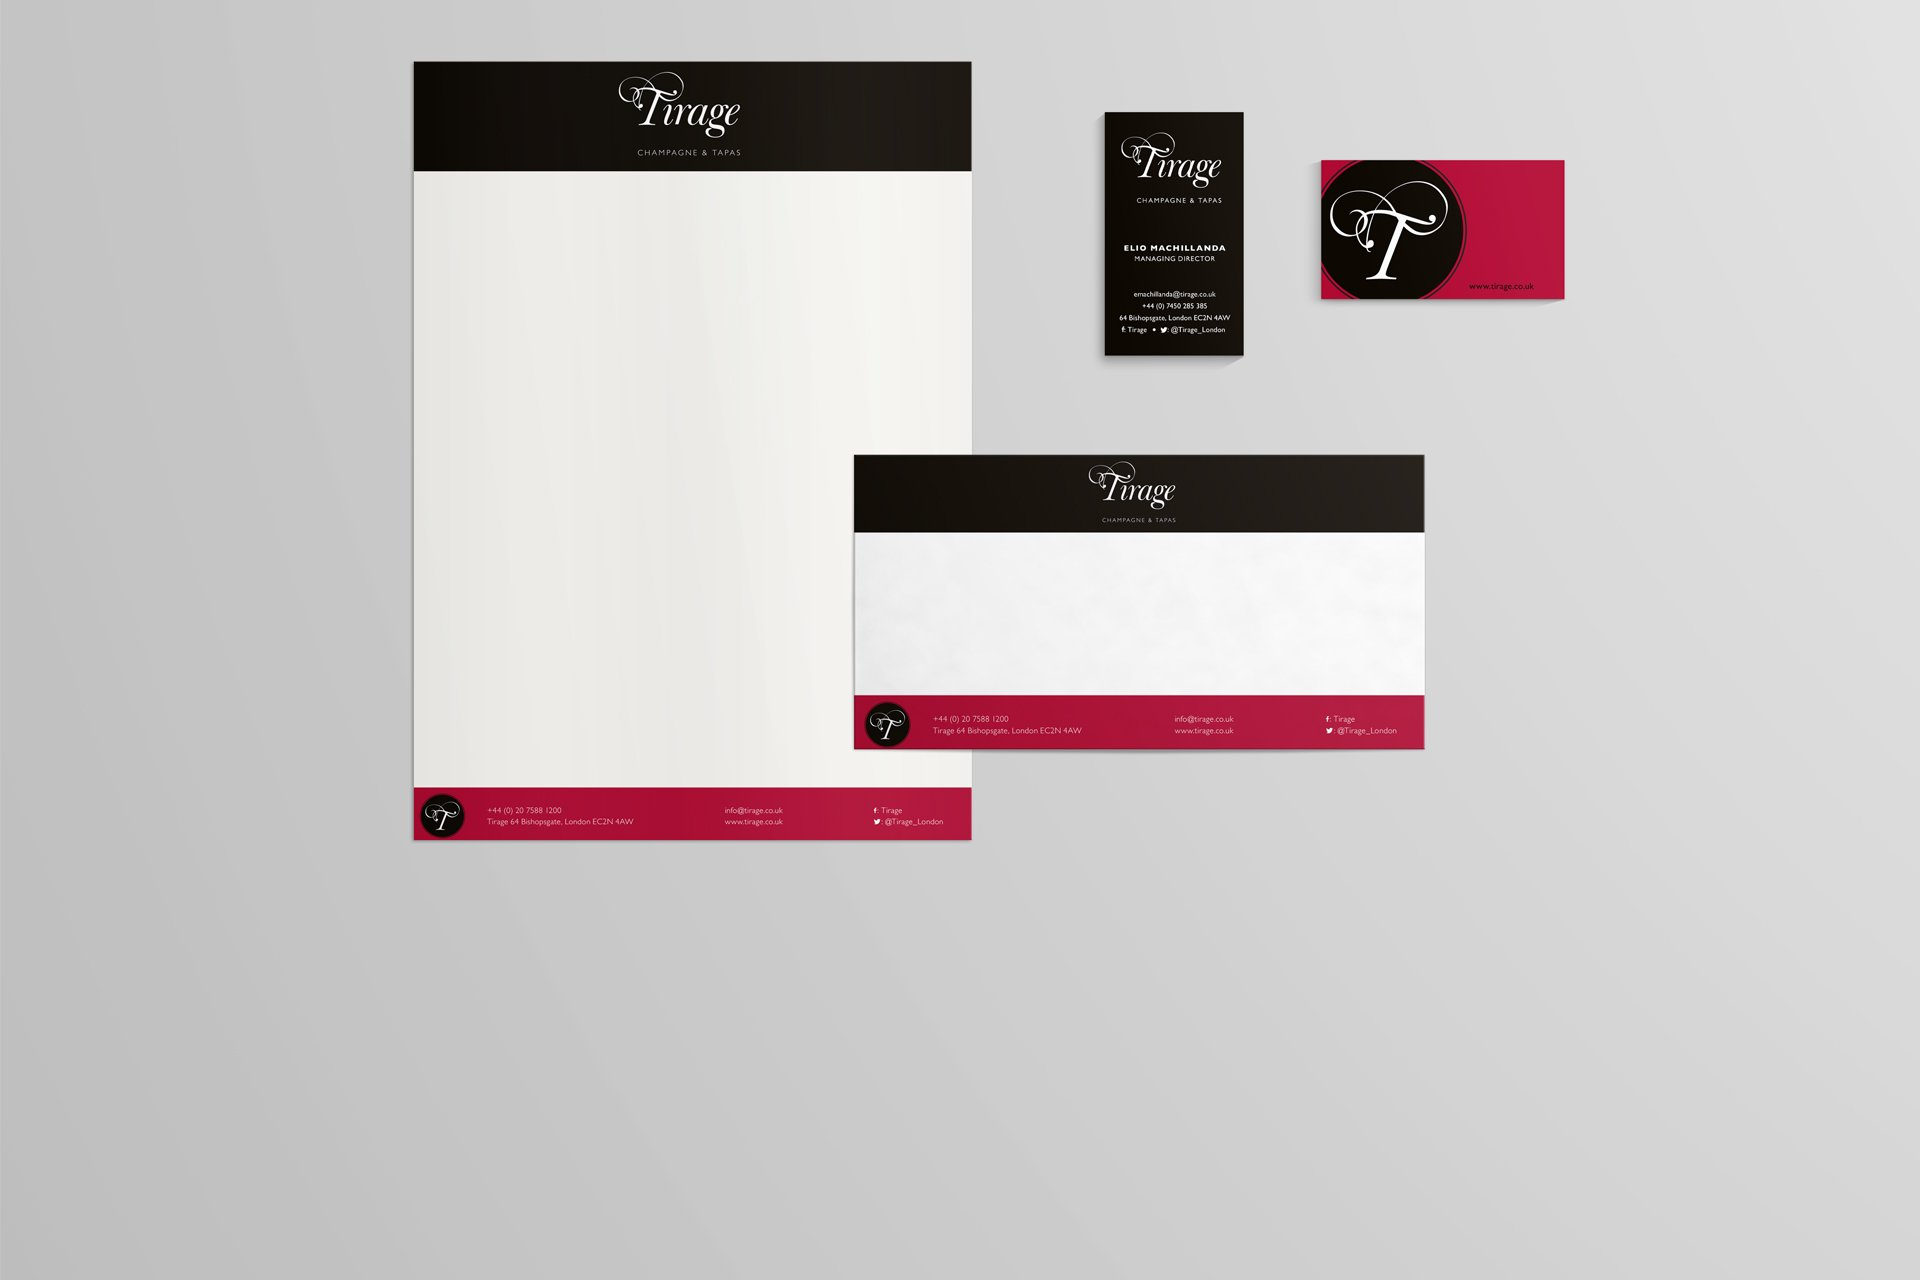 tirage champagne and tapas restaurant stationery